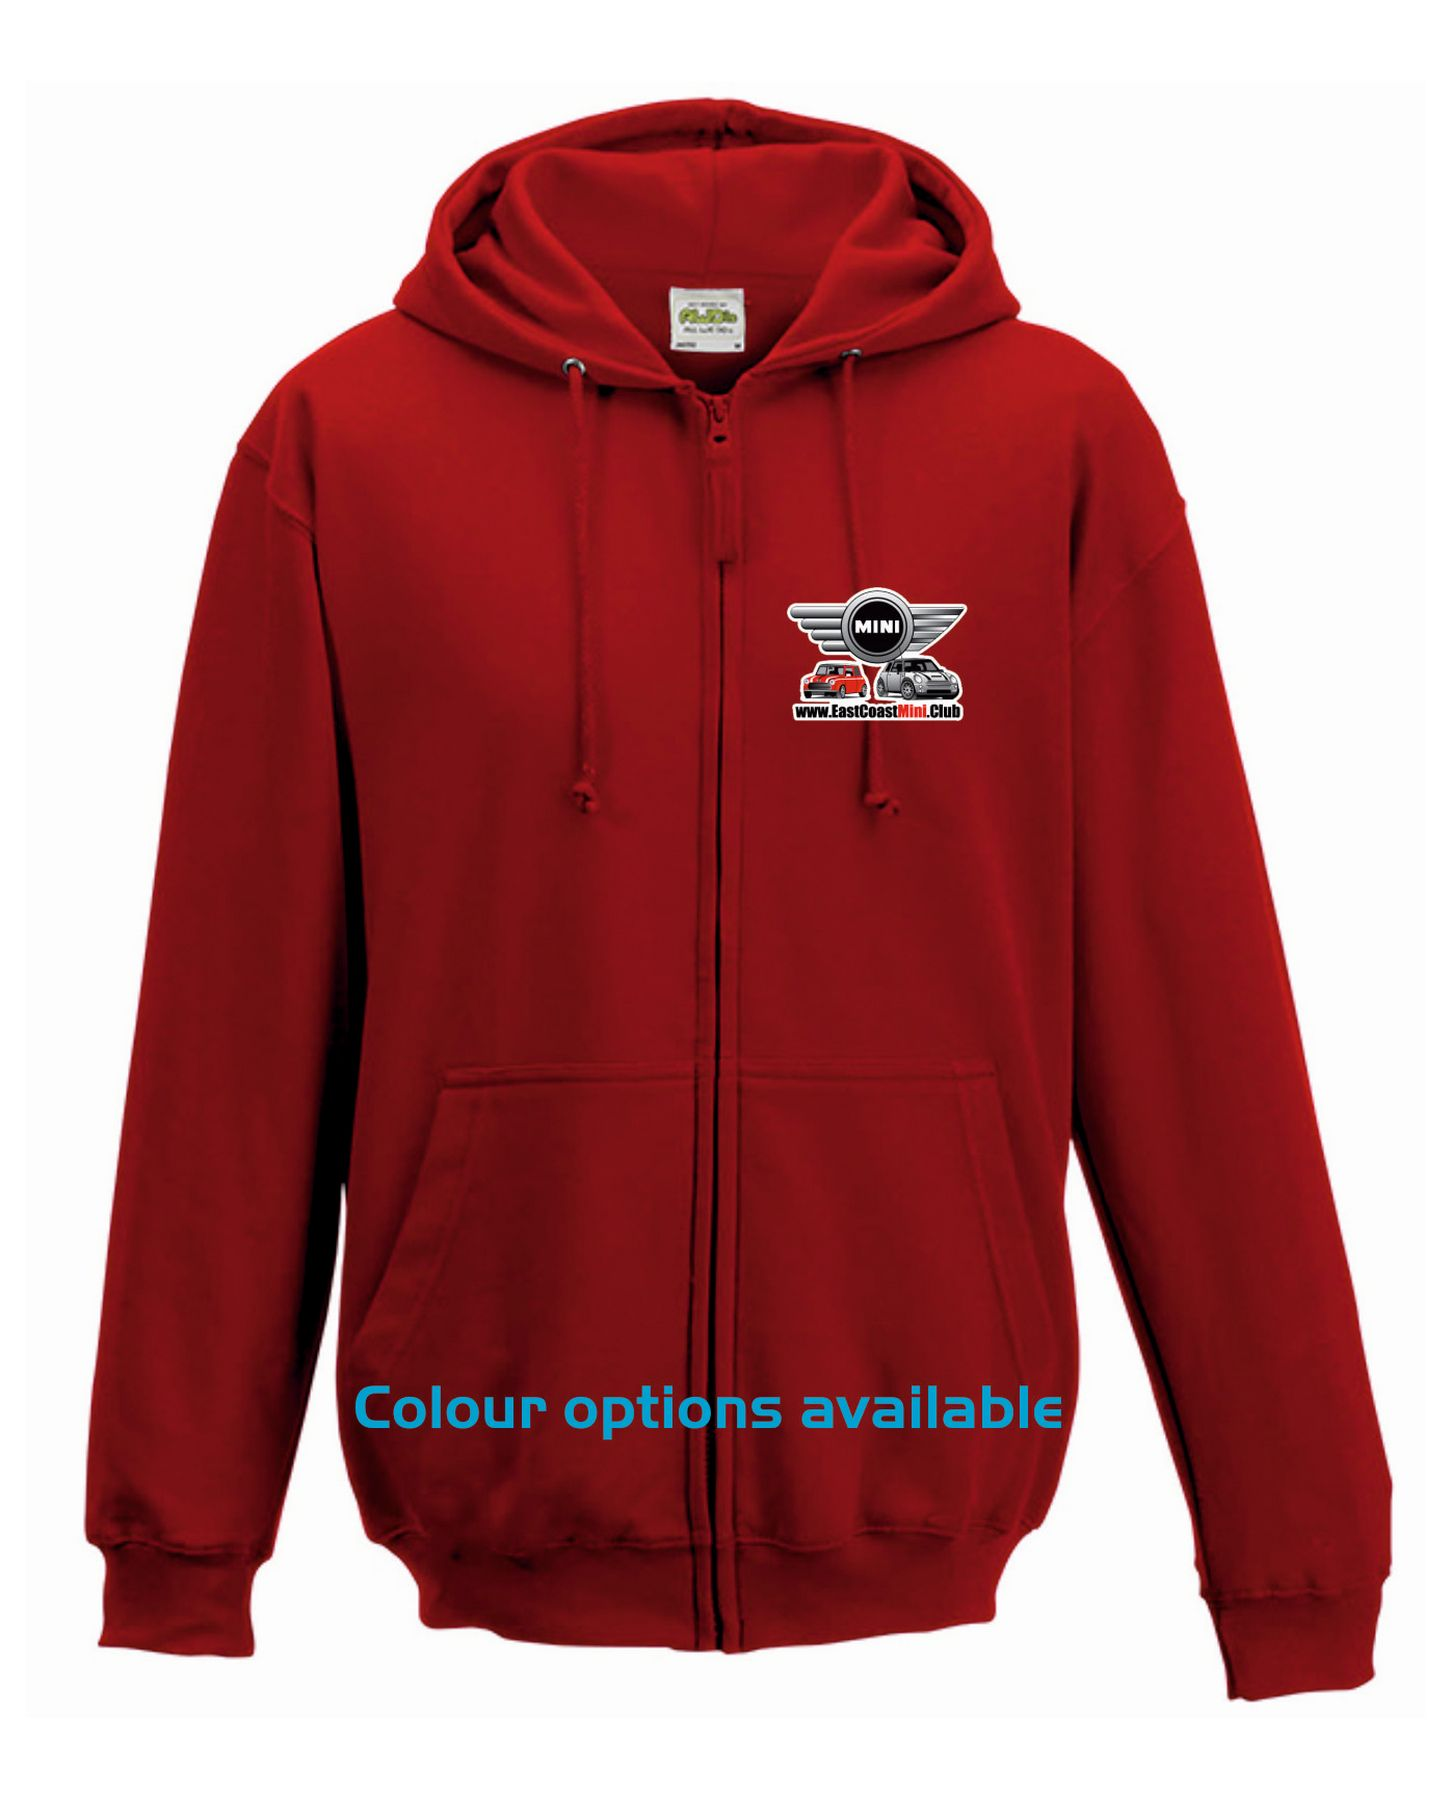 East Coast Mini Club – Hoodie Zipped Adults